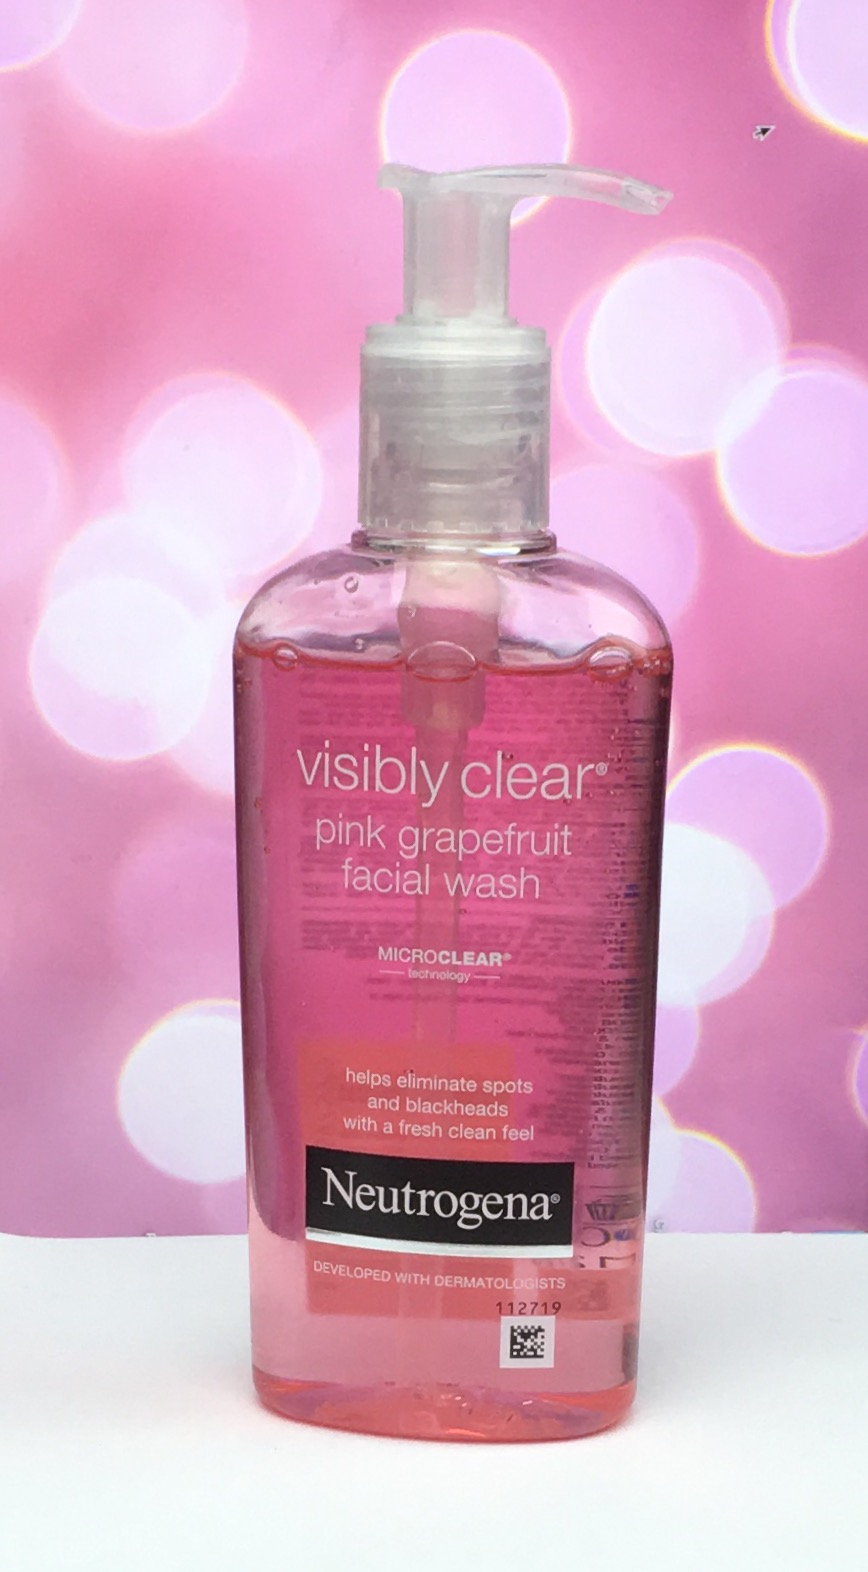 Visibly Clear Grapefruit Facial Wash By Neutrogena My Pastel Blog